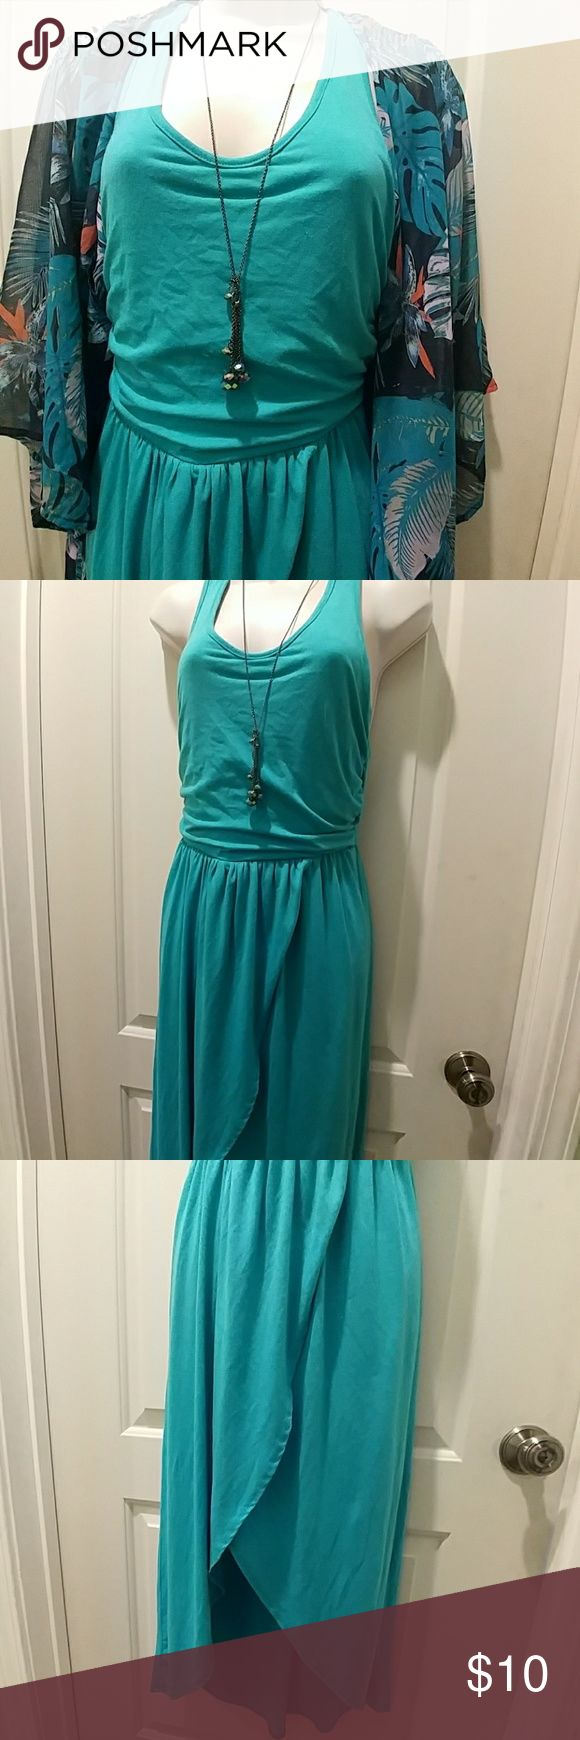 """🌠 Vanity turquoise high-low maxi dress Vanity turquoise high-low maxi dress, Size small Fully lined beneath Shortest length measures 30"""" long Never worn  30% off a bundle of three or more items Everything is negotiable Smoke free home Pet free home All items deserve a 2nd chance at happiness Currently not trading Vanity Dresses High Low"""